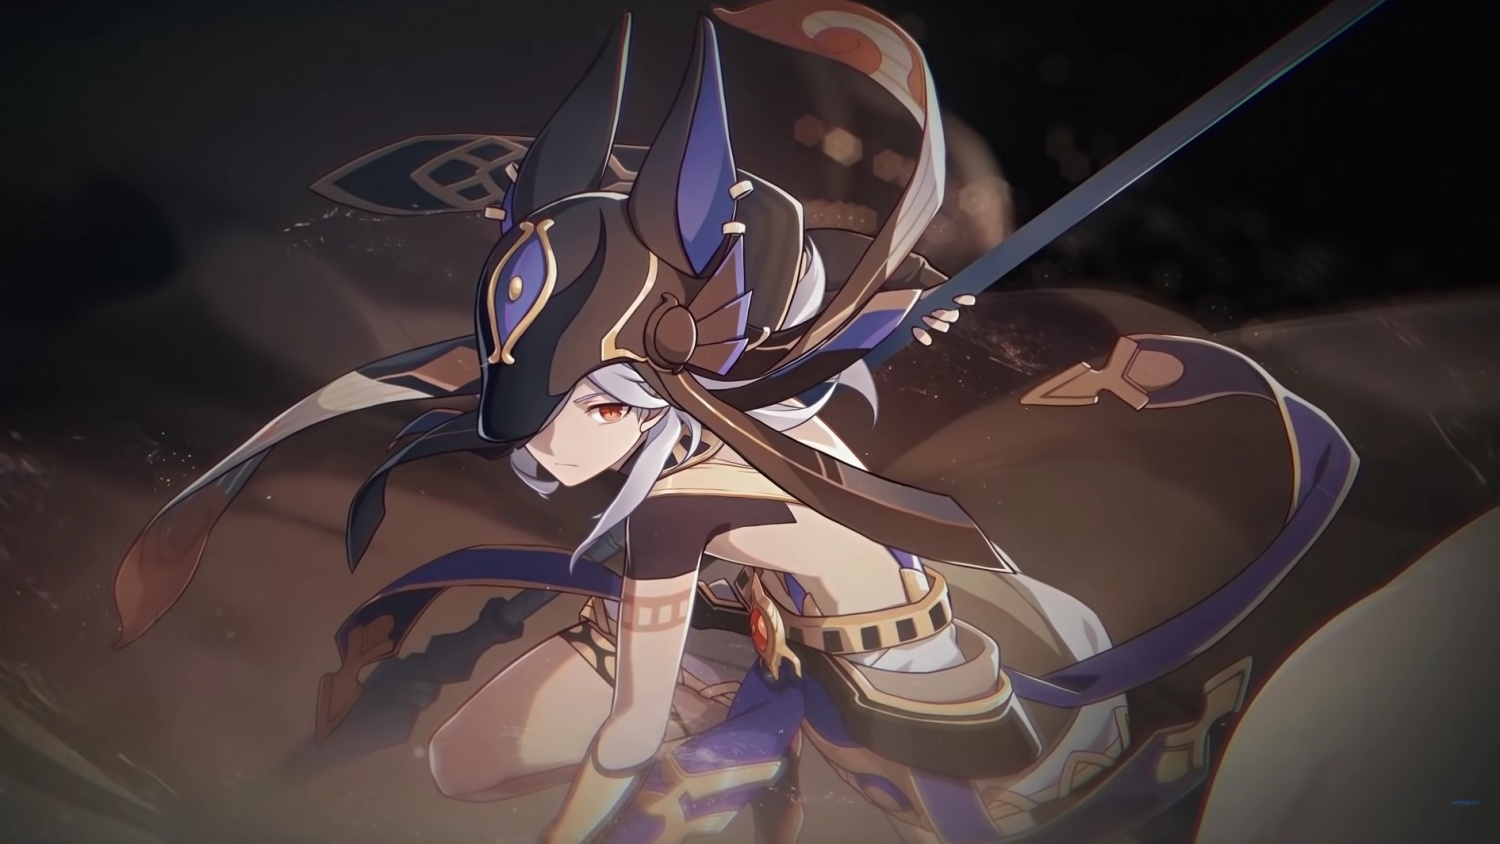 'Genshin Impact' Adds 120 FPS Mode Support on iOS Devices to Take Advantage of ProMotion Display